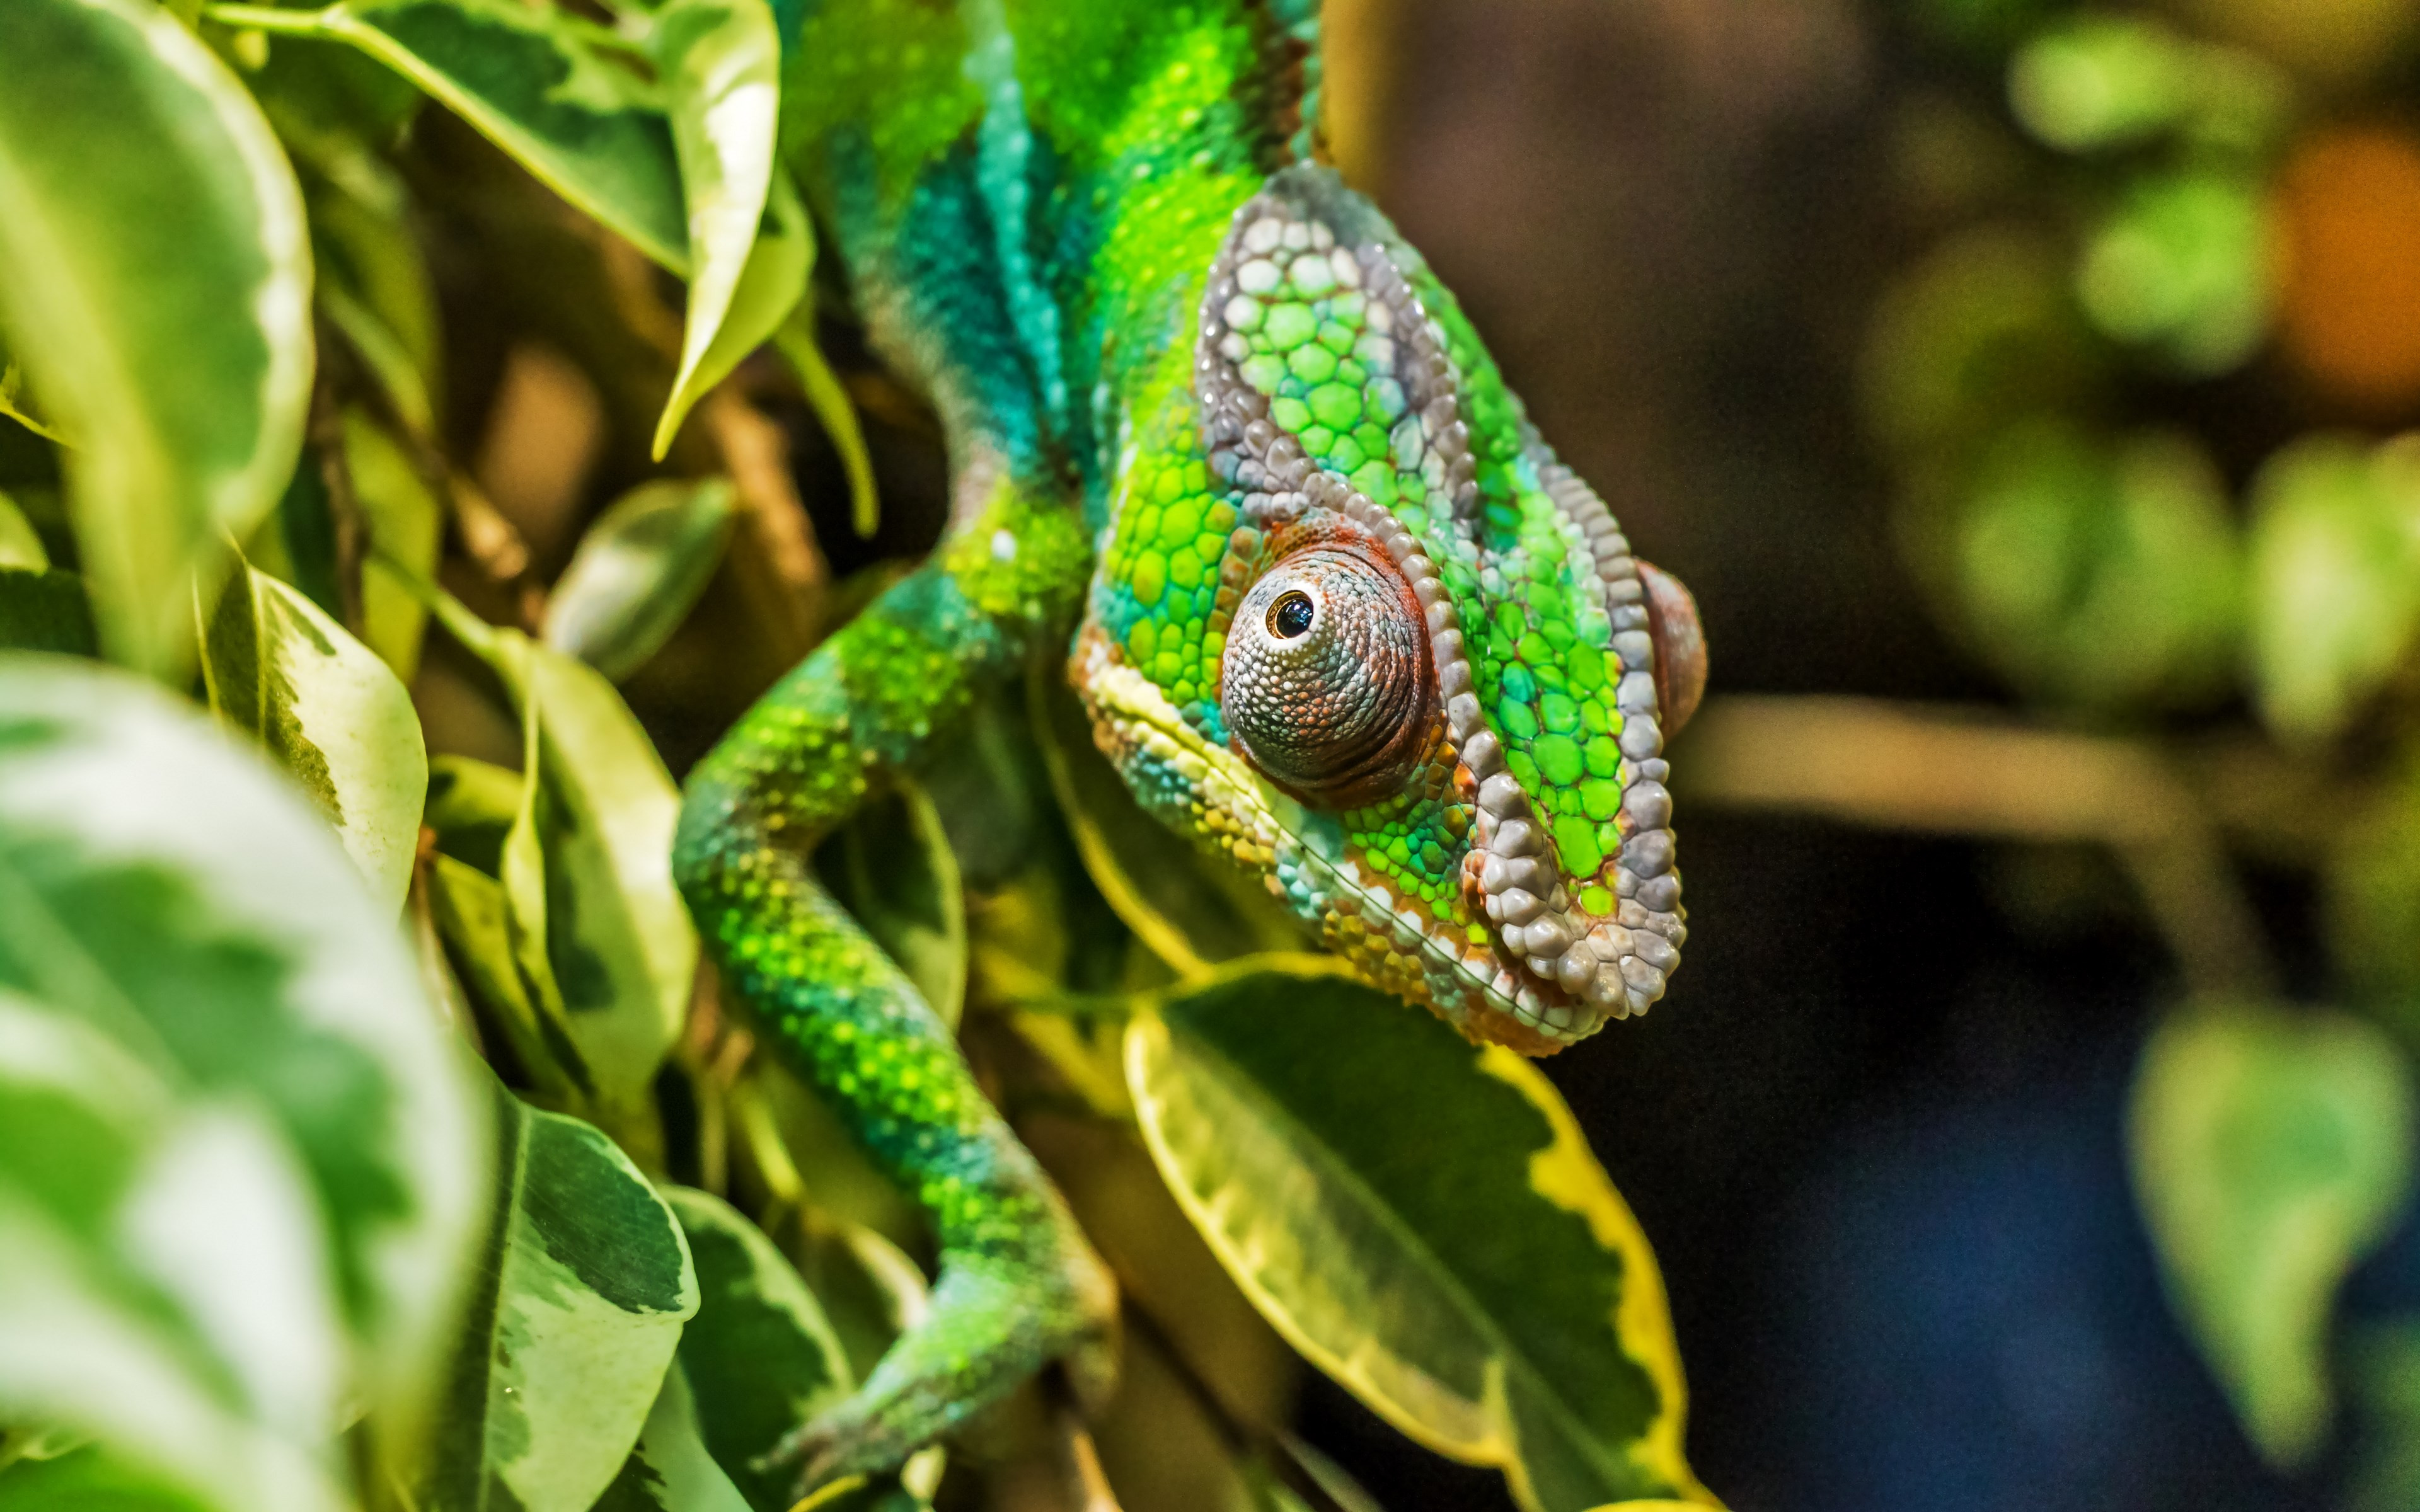 Panther chameleon reptile wallpaper 3840x2400